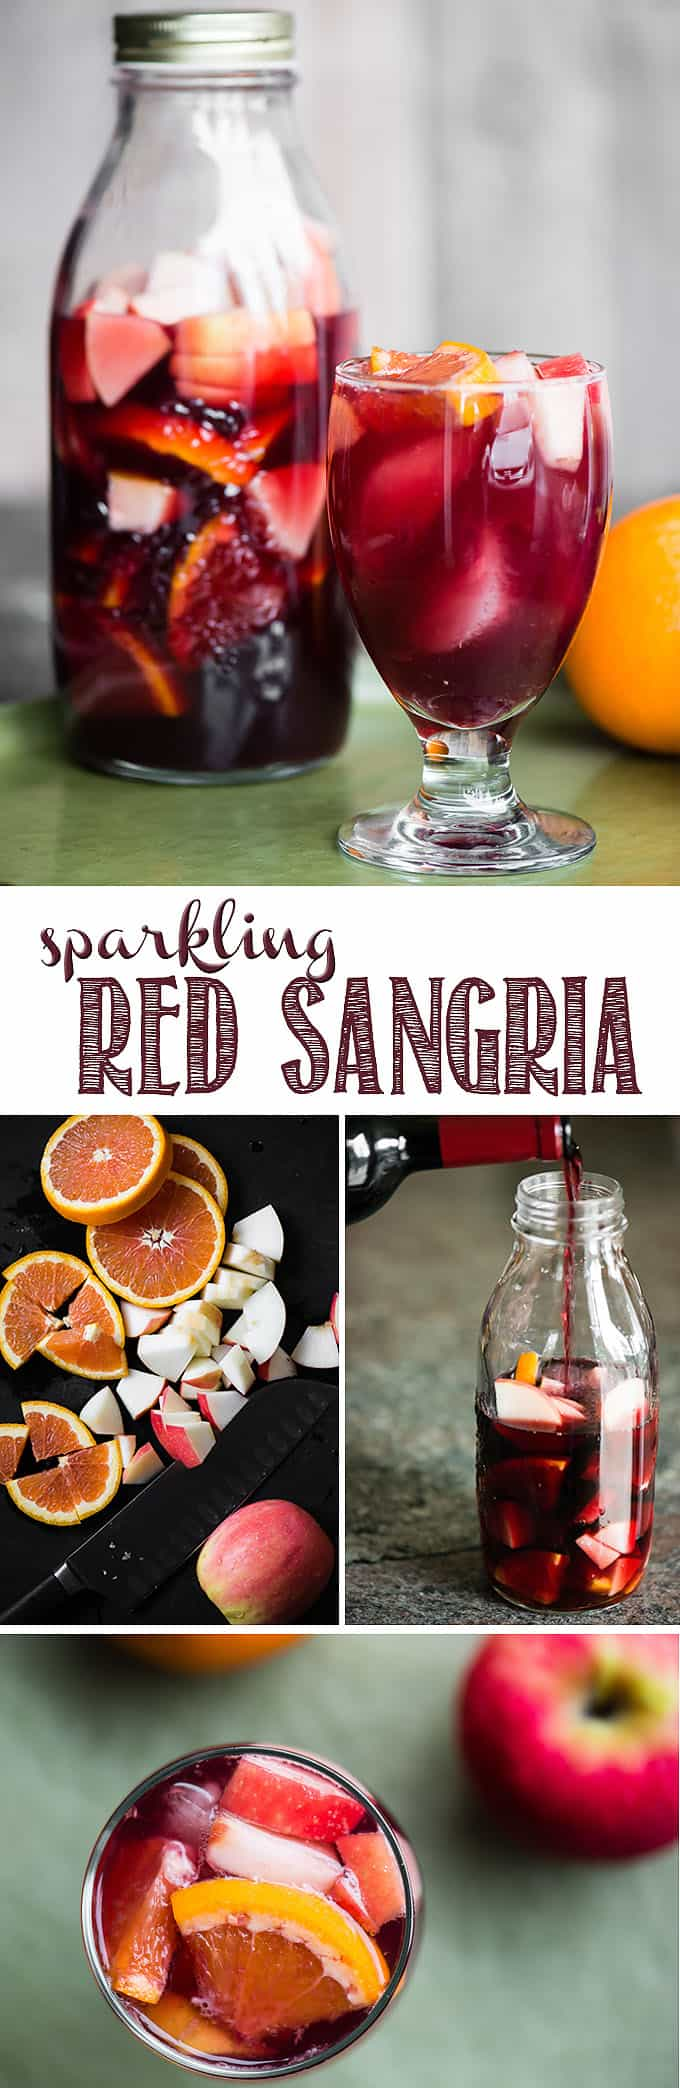 Sparkling Red Sangria is made with your favorite red wine, a splash of orange liquour, small bites of fresh fruit, and bubbles!The longer the fruit soaks, the more of the sangria it absorbs for asnackonce you finish your cocktail! This red wine sangria recipe is a fabulously easy make-ahead cocktail. #sangria #redsangria #redwinesangria #cocktail #wine